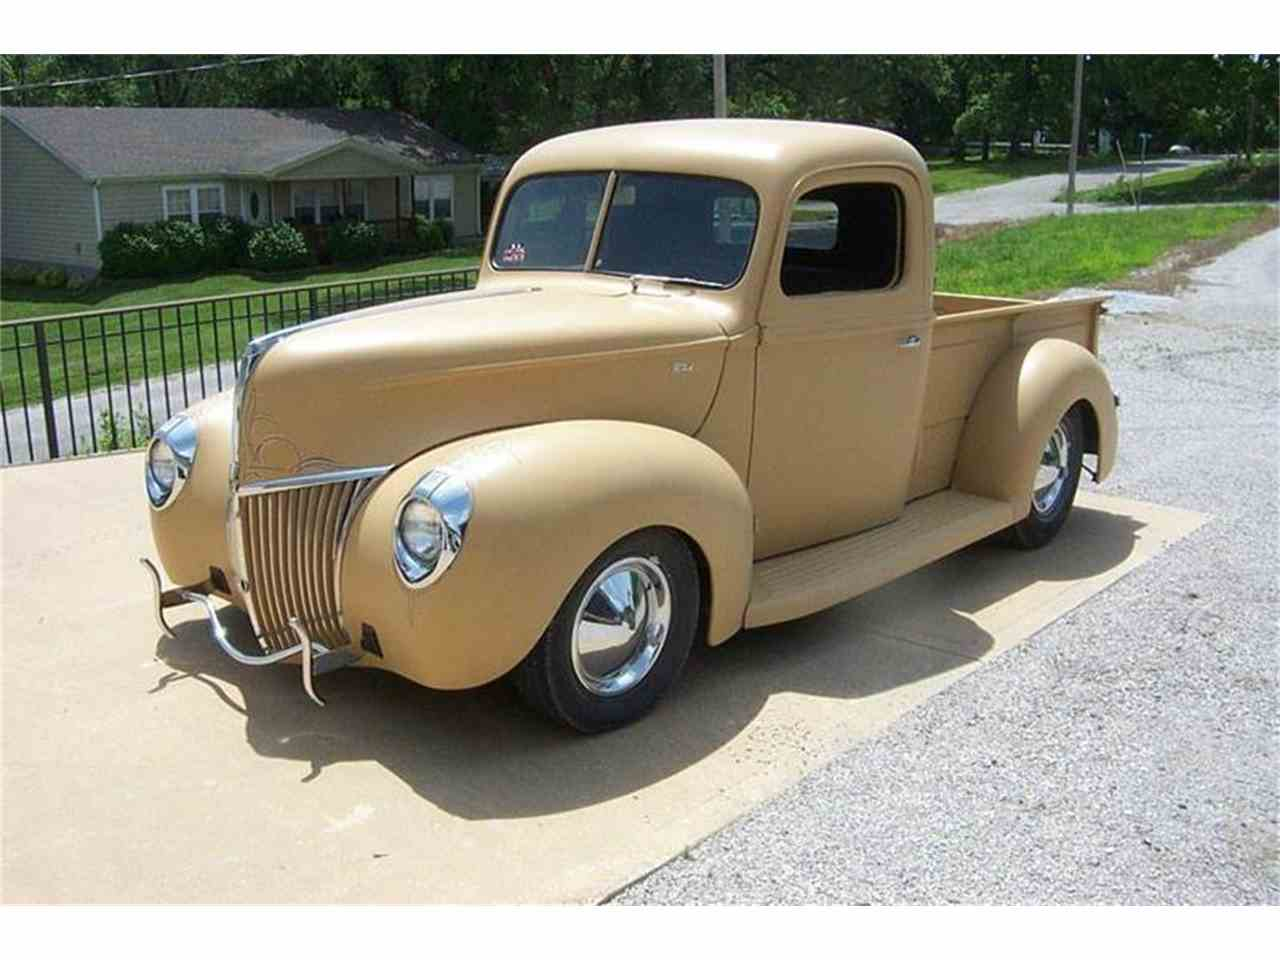 1940 Ford F100 for Sale | ClassicCars.com - 73.2KB